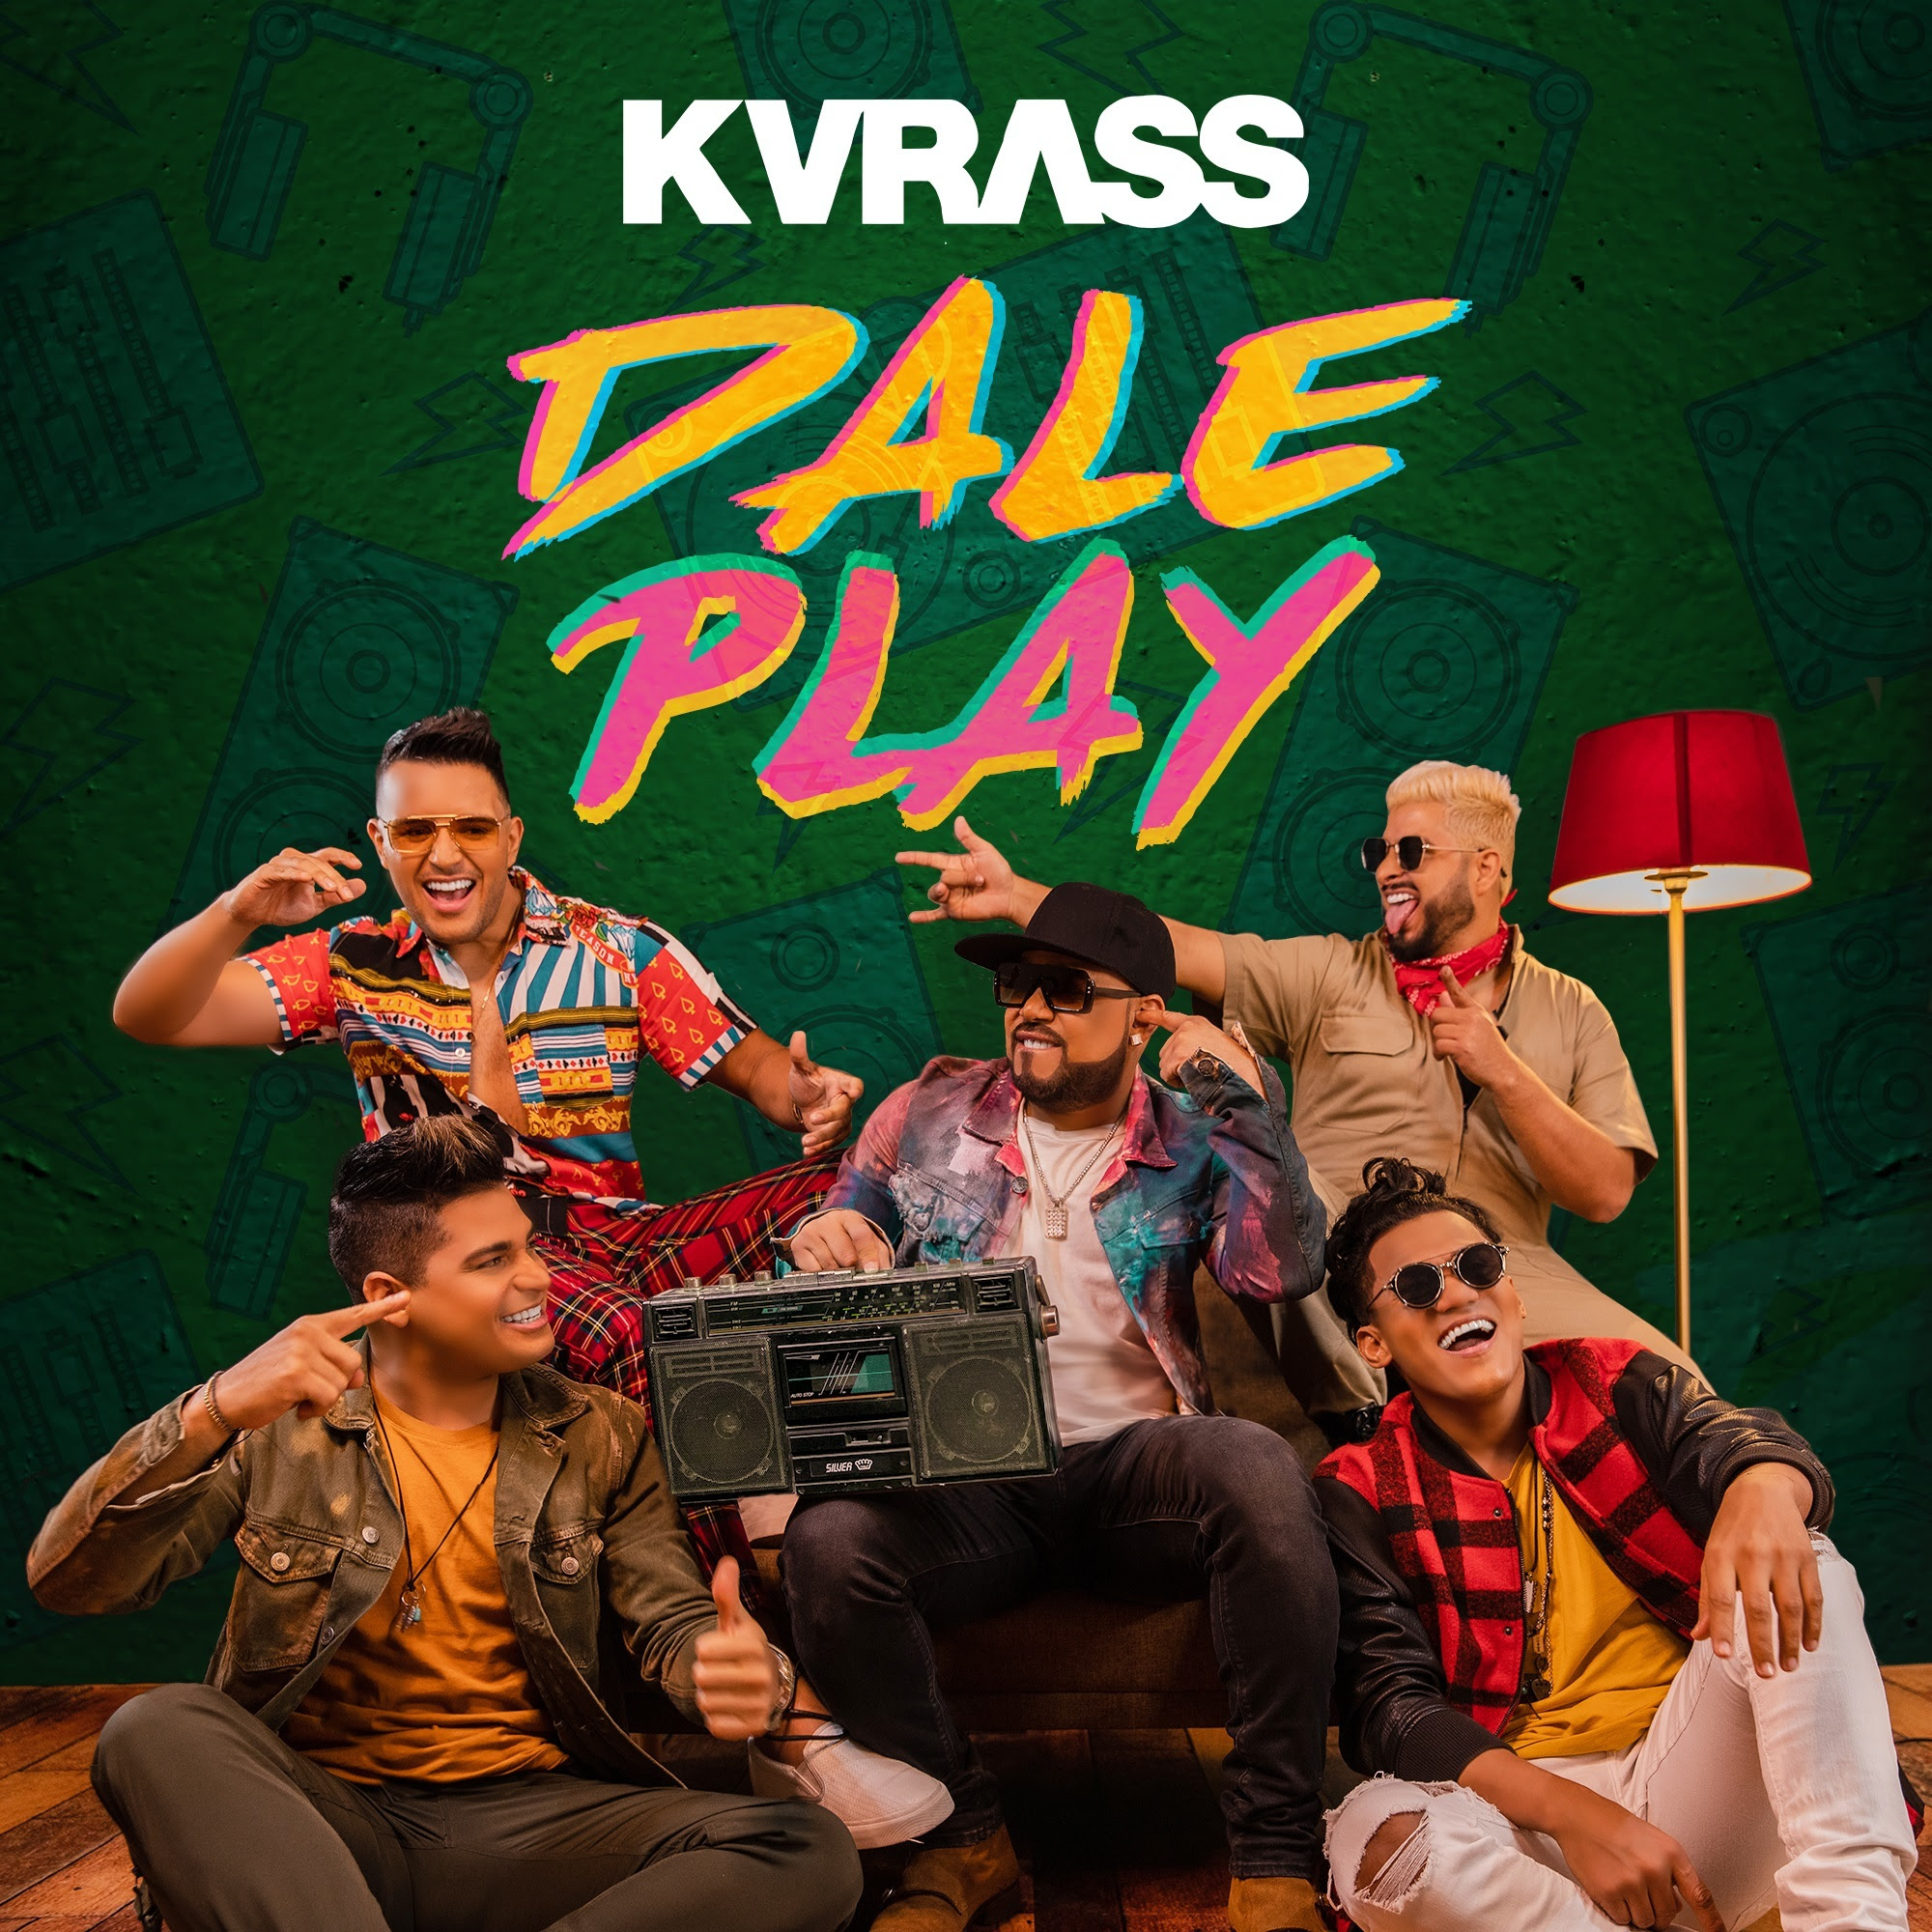 Dale Play Kvrass